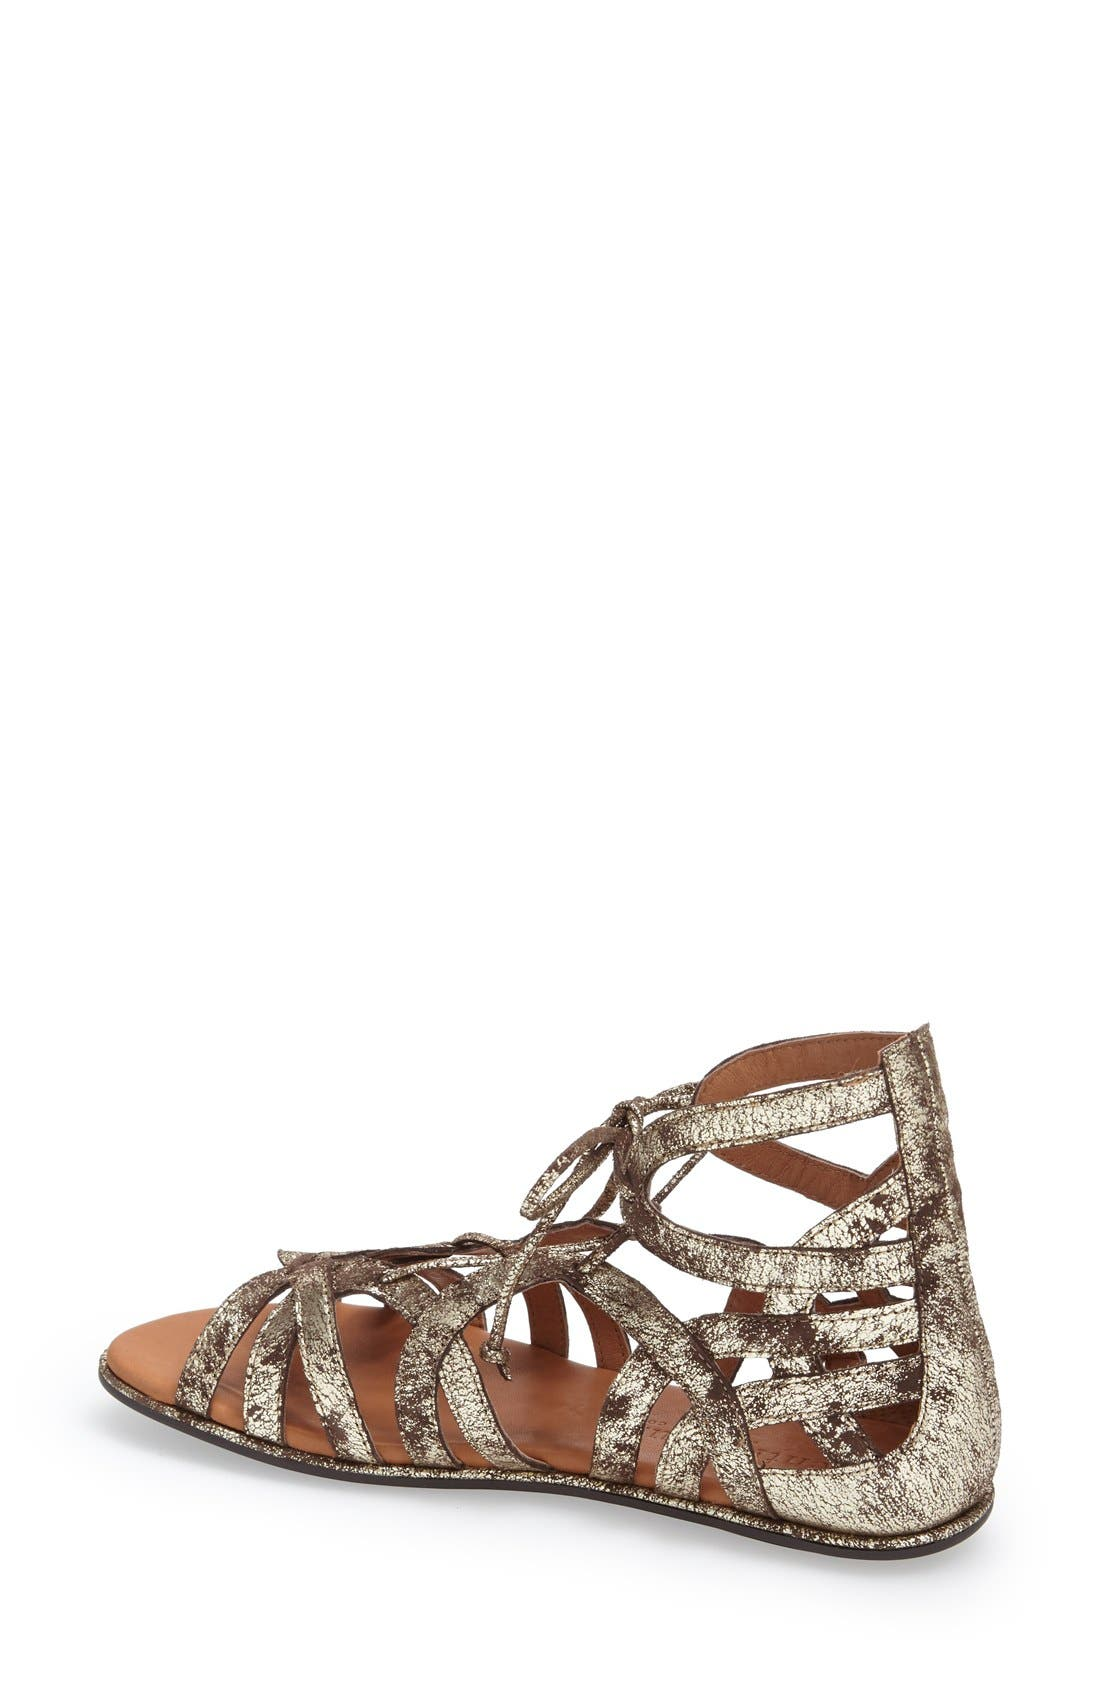 GENTLE SOULS BY KENNETH COLE,                             'Break My Heart 3' Cage Sandal,                             Alternate thumbnail 2, color,                             BROWN LEATHER